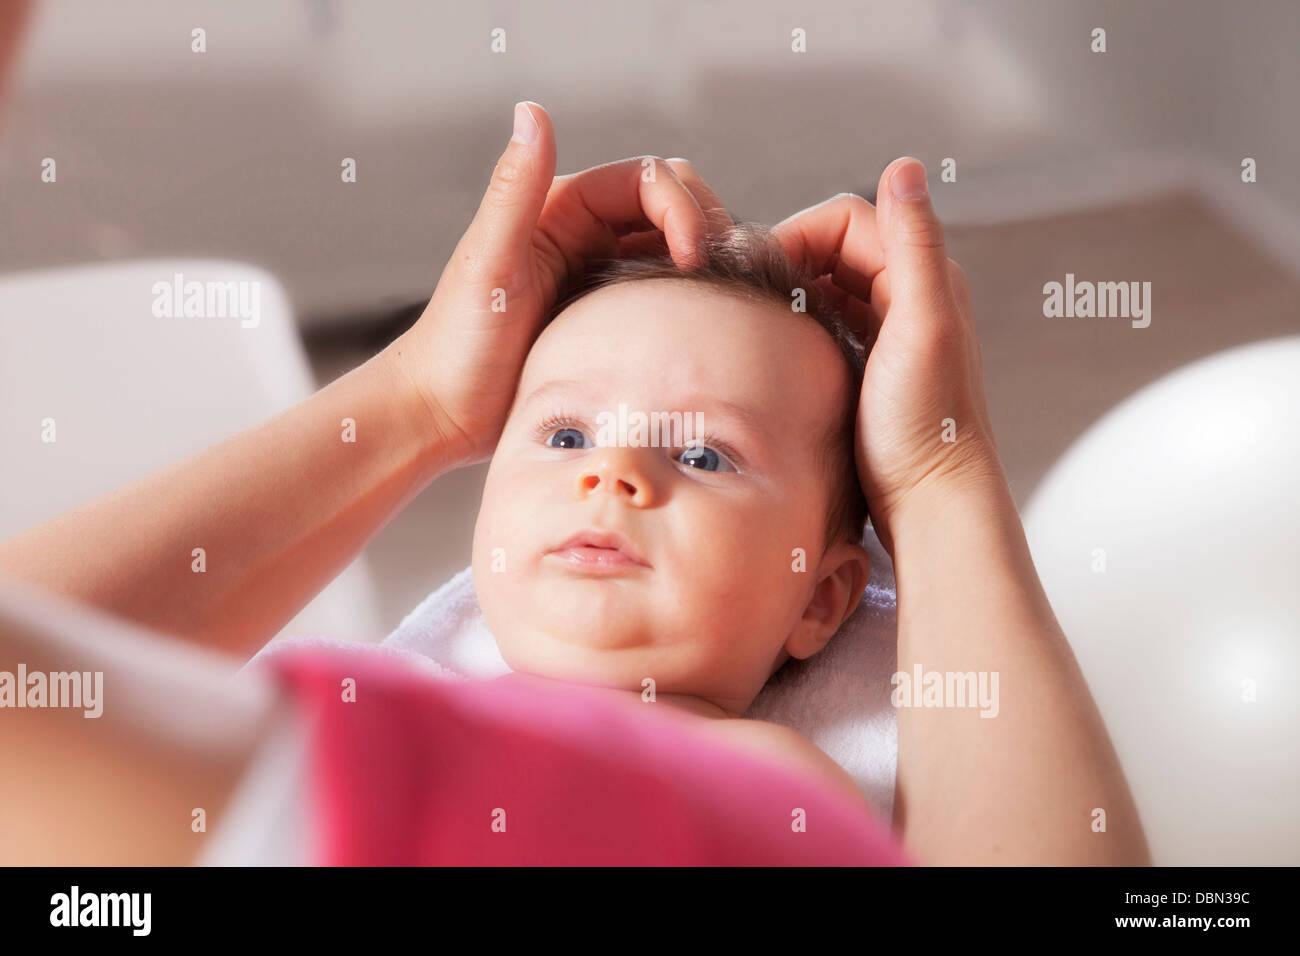 Baby boy receiving treatment from osteopath, Munich, Bavaria, Germany - Stock Image